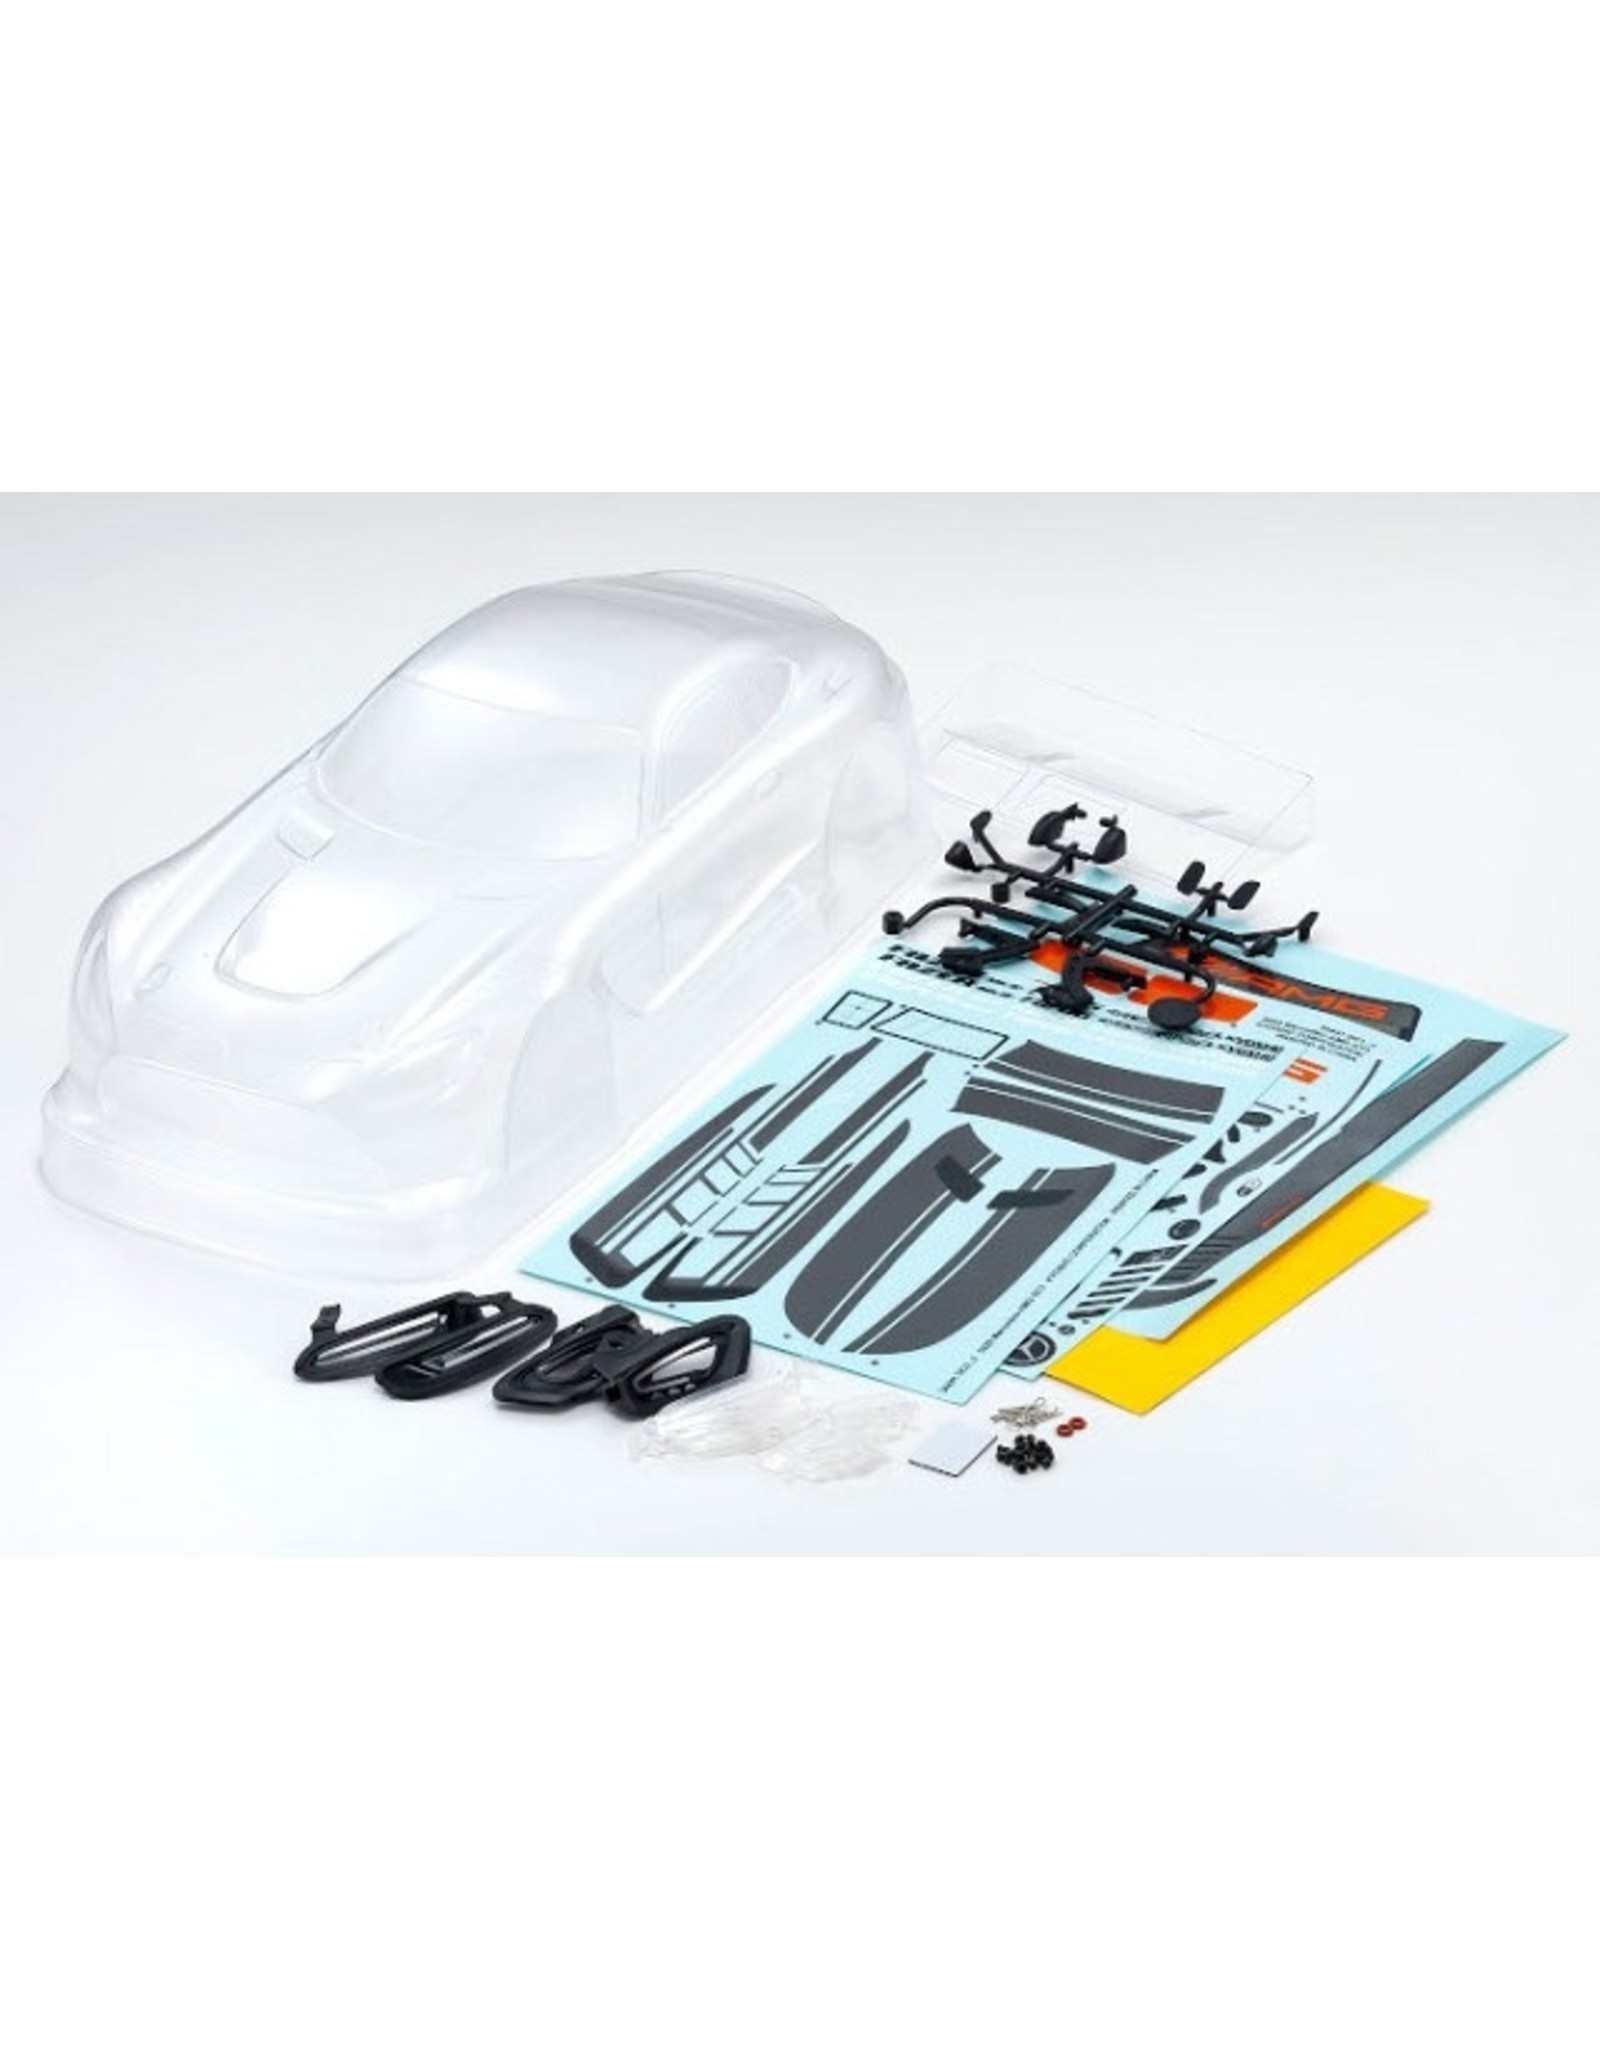 Kyosho 34441 Fazer Mk.2 FZ02 Chassis Kit with Mercedes GT3 2020 clear body